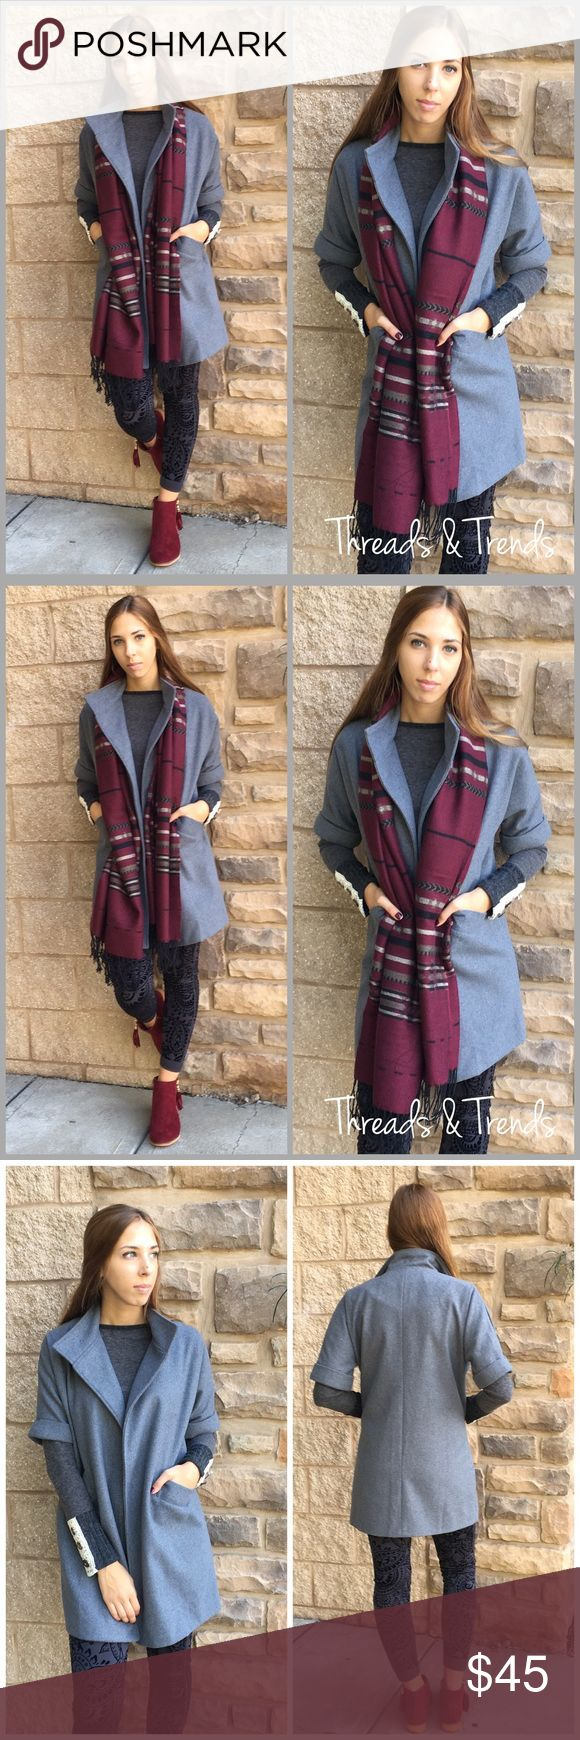 """Grey Blazer Jacket Back to basics grey blazer jacket. 3/4 length cuffed sleeves, open front and two front pockets. Made of a hemp faux wool. Fully lined. Size S/M.                                                           Bust 40"""" Sleeve length 16"""" Length 32"""" Threads & Trends Jackets & Coats Blazers"""